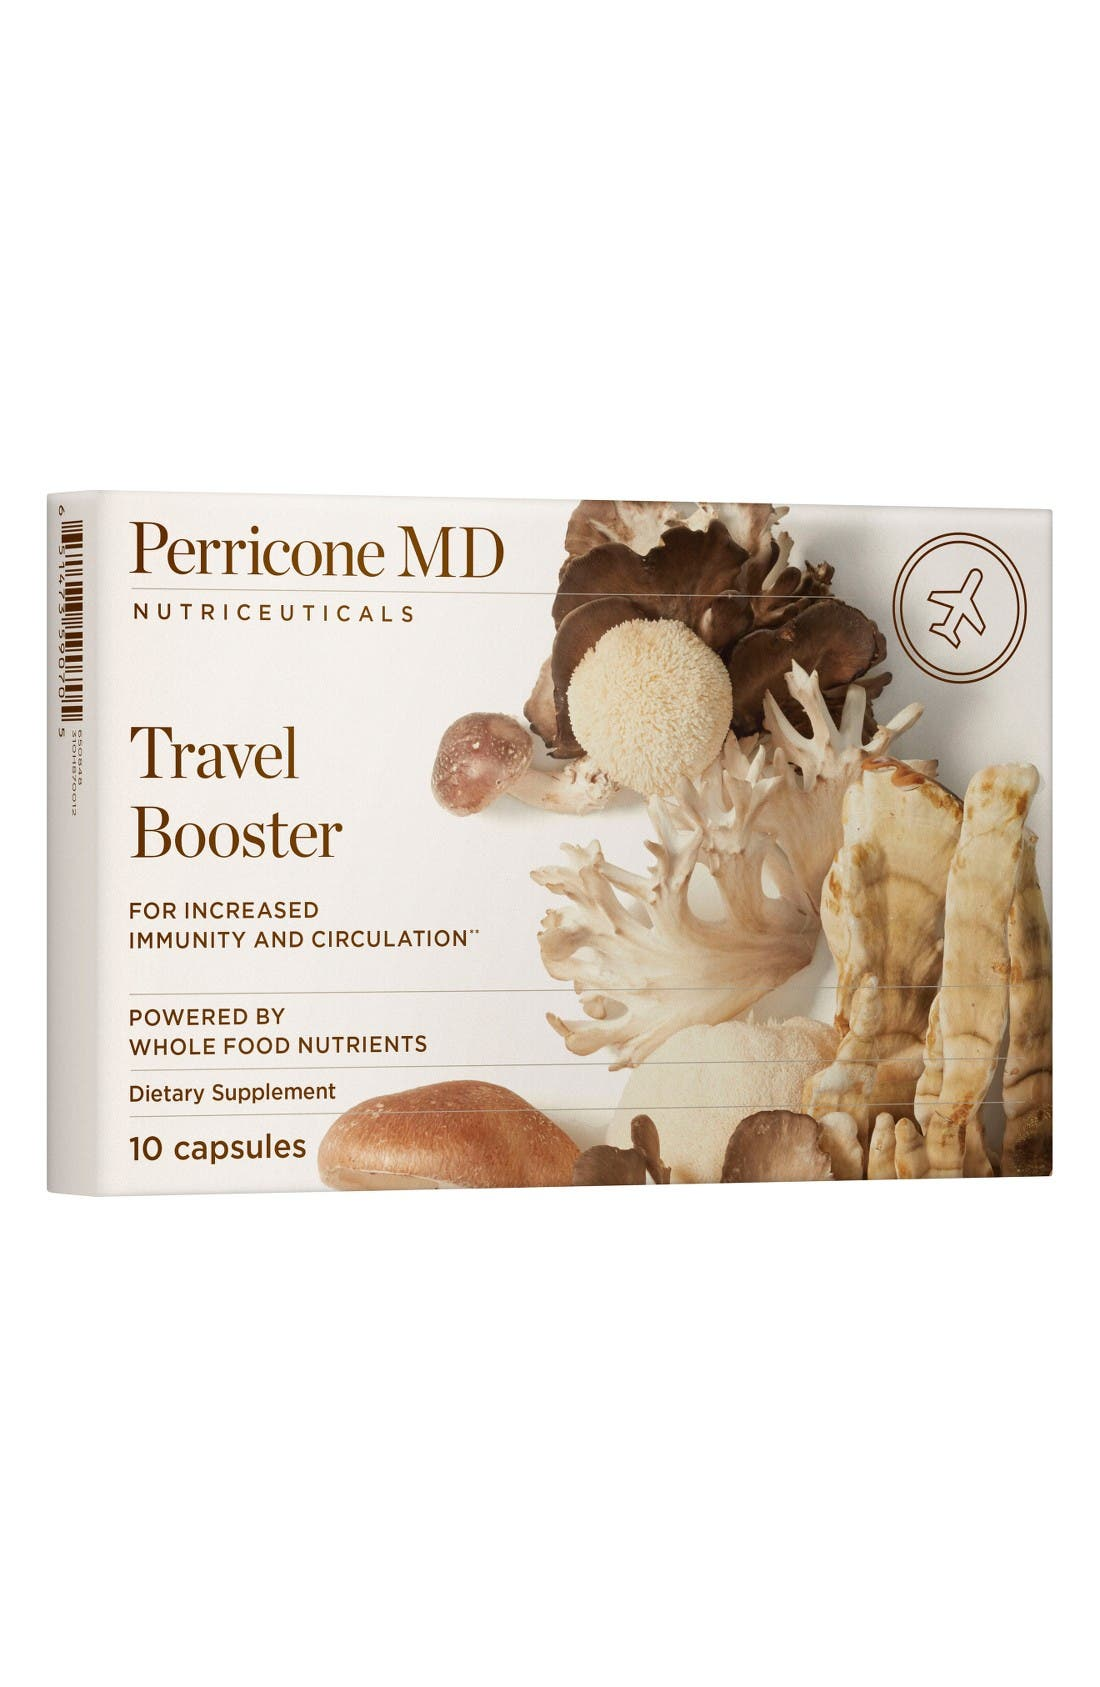 Perricone MD Travel Booster Supplement